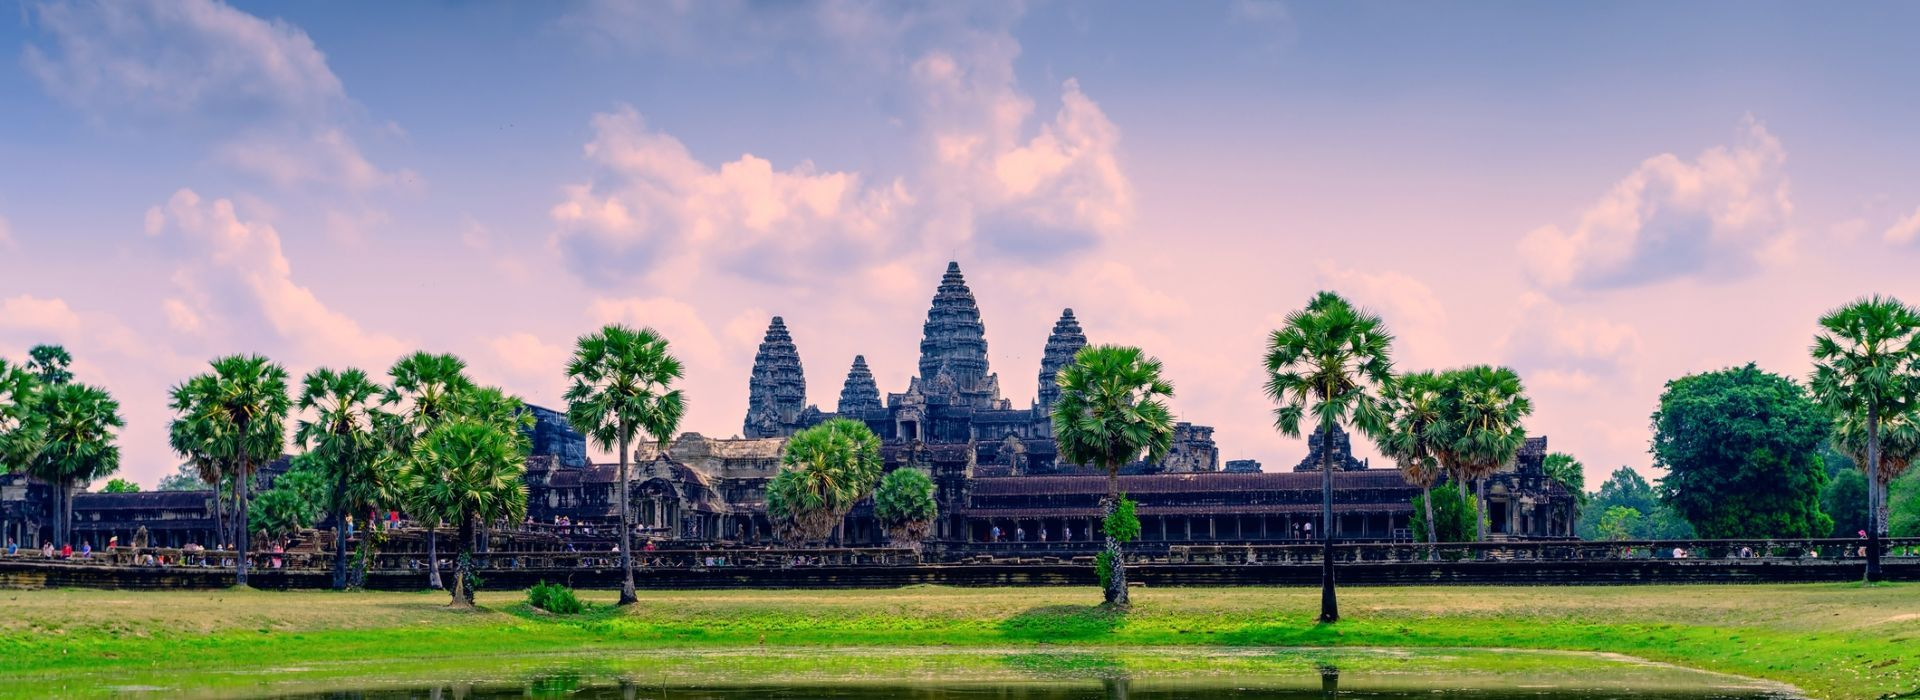 Beaches Tours in Angkor Wat